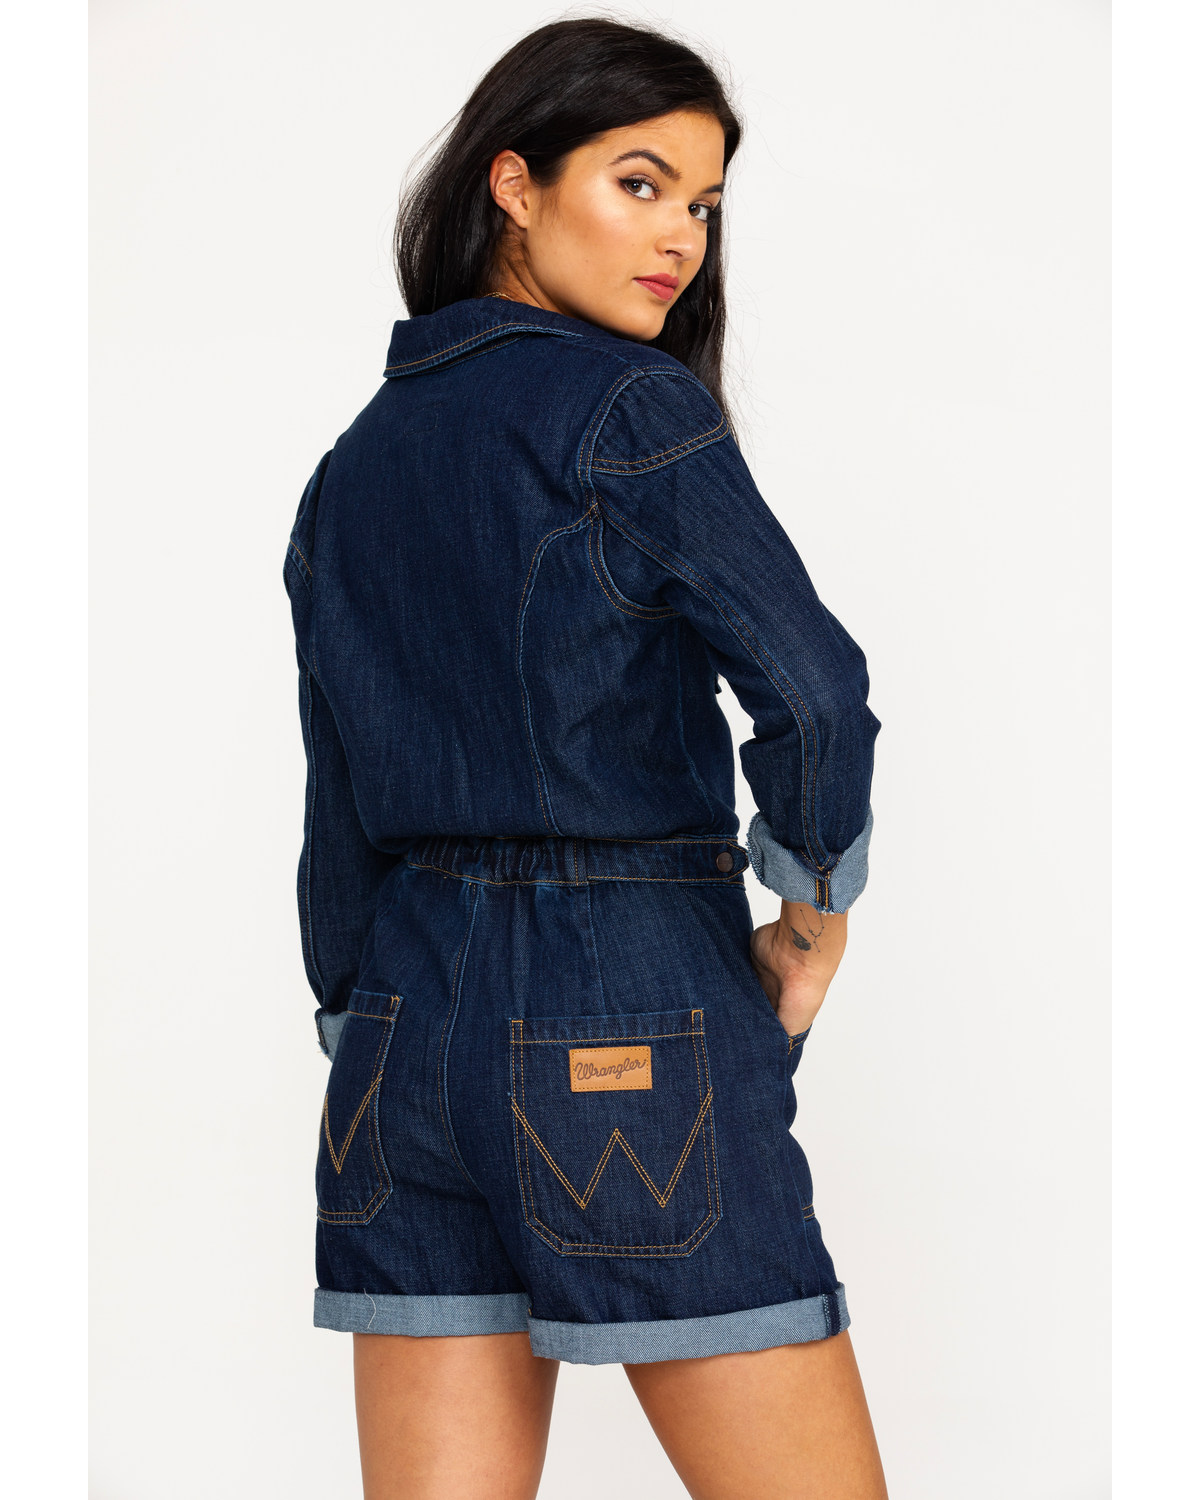 b9936318f2c Wrangler Women s Modern Denim Playsuit Long Sleeve Romper